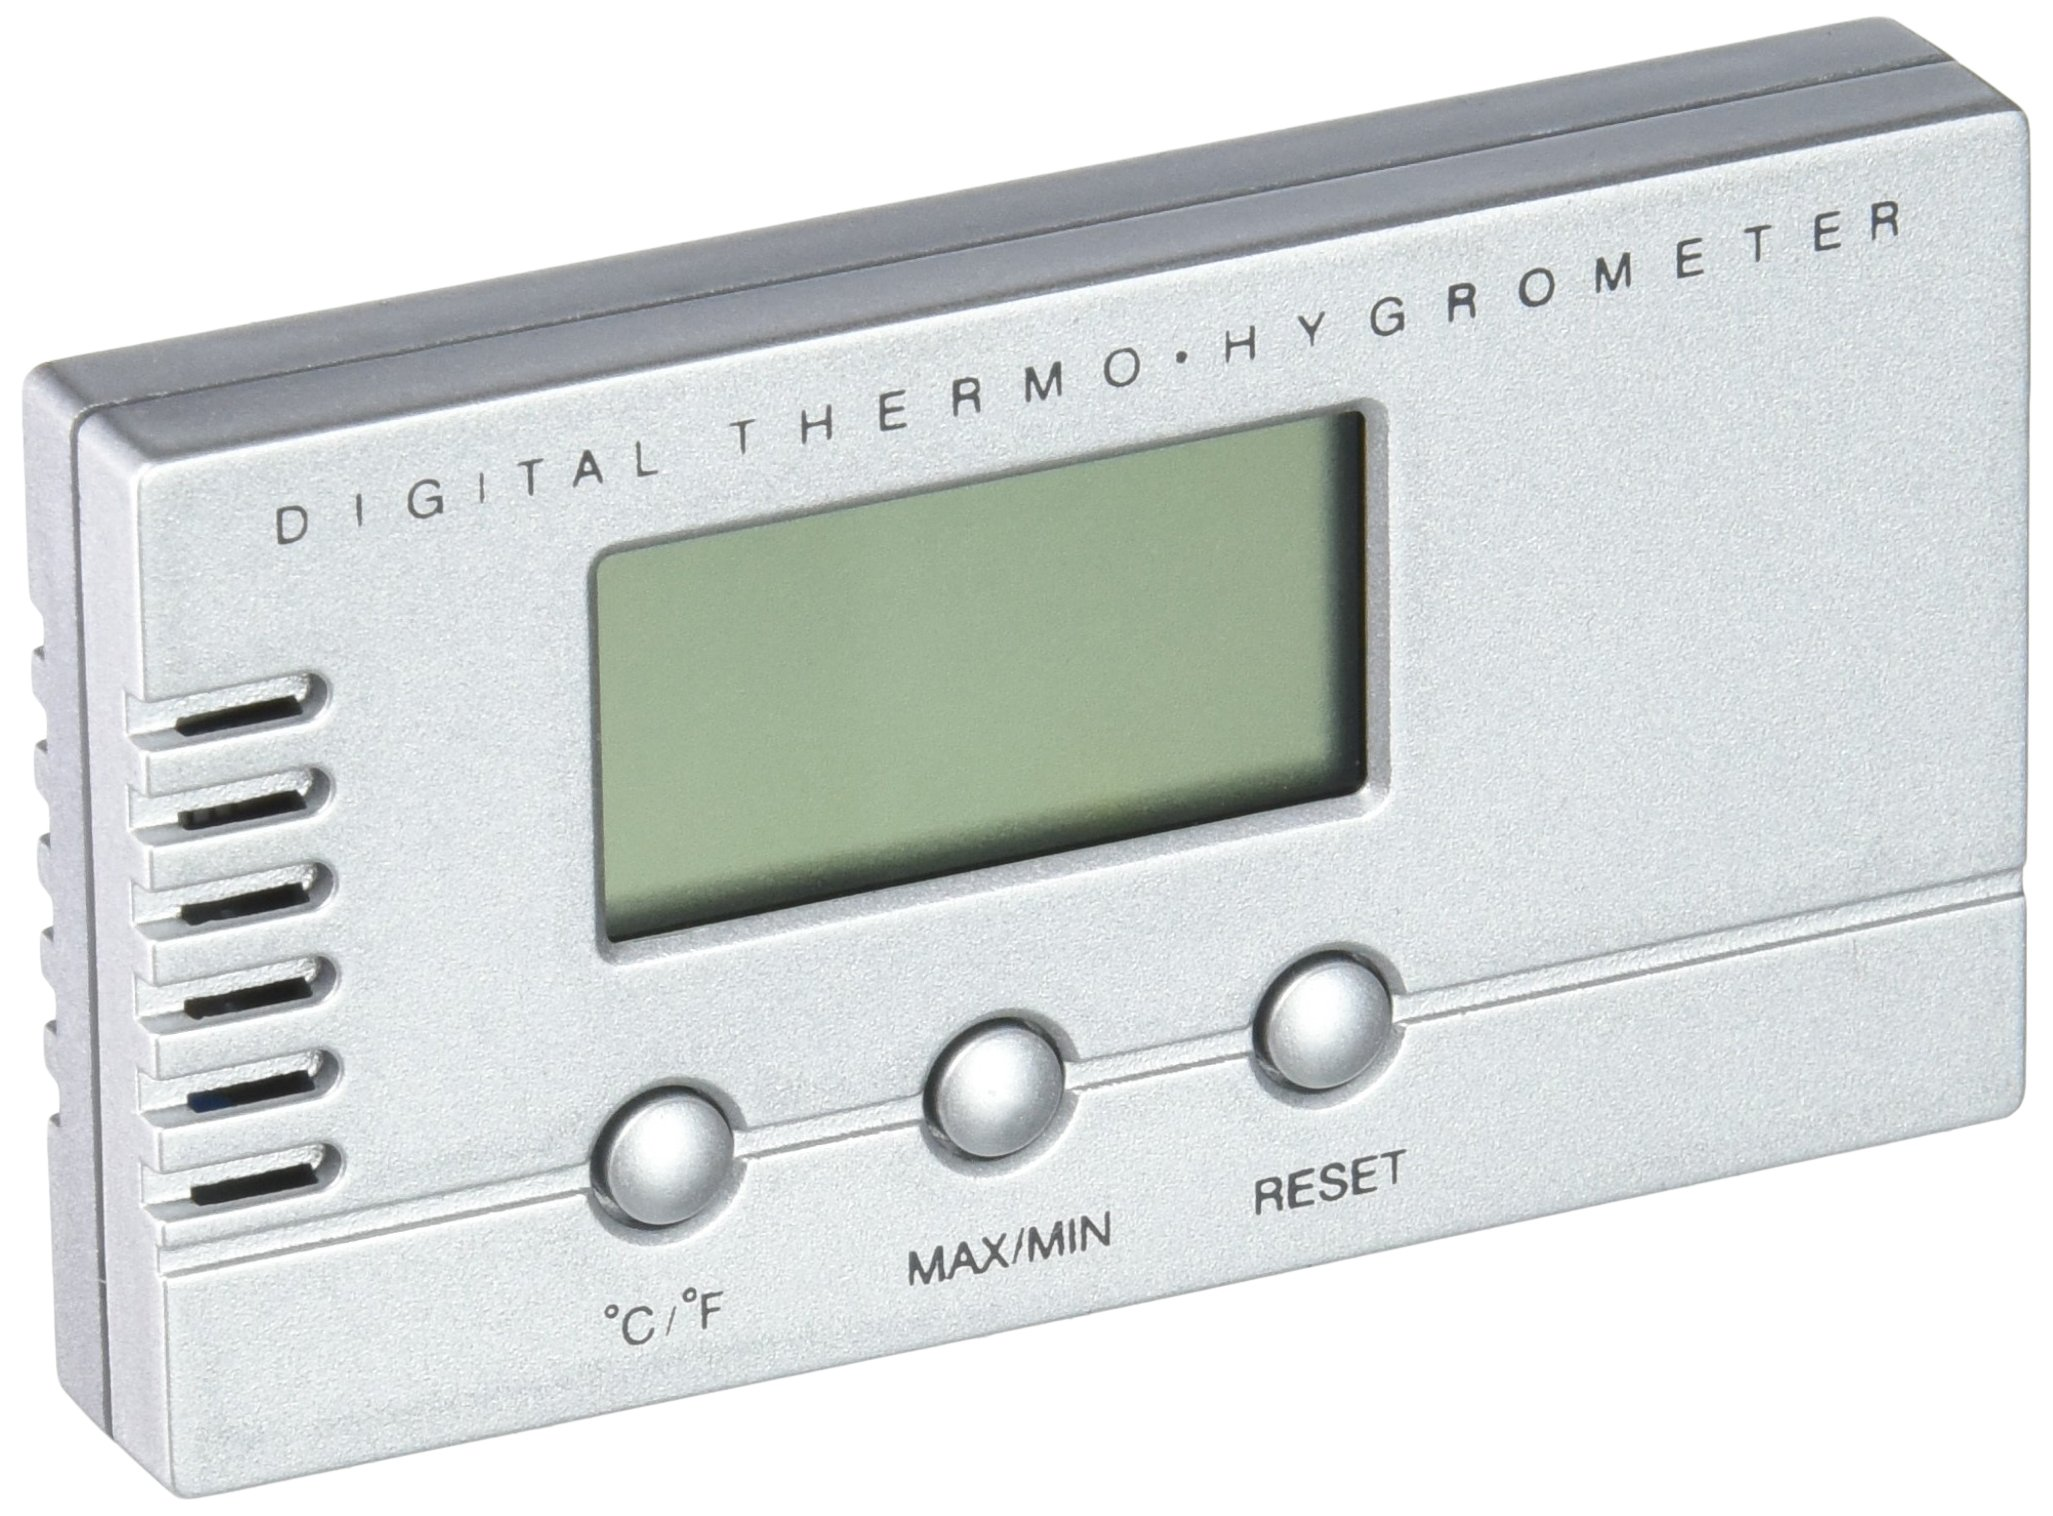 Visol Products VAC705 Silver Digital Thermometer and Hygrometer for Cigar Humidors by Visol